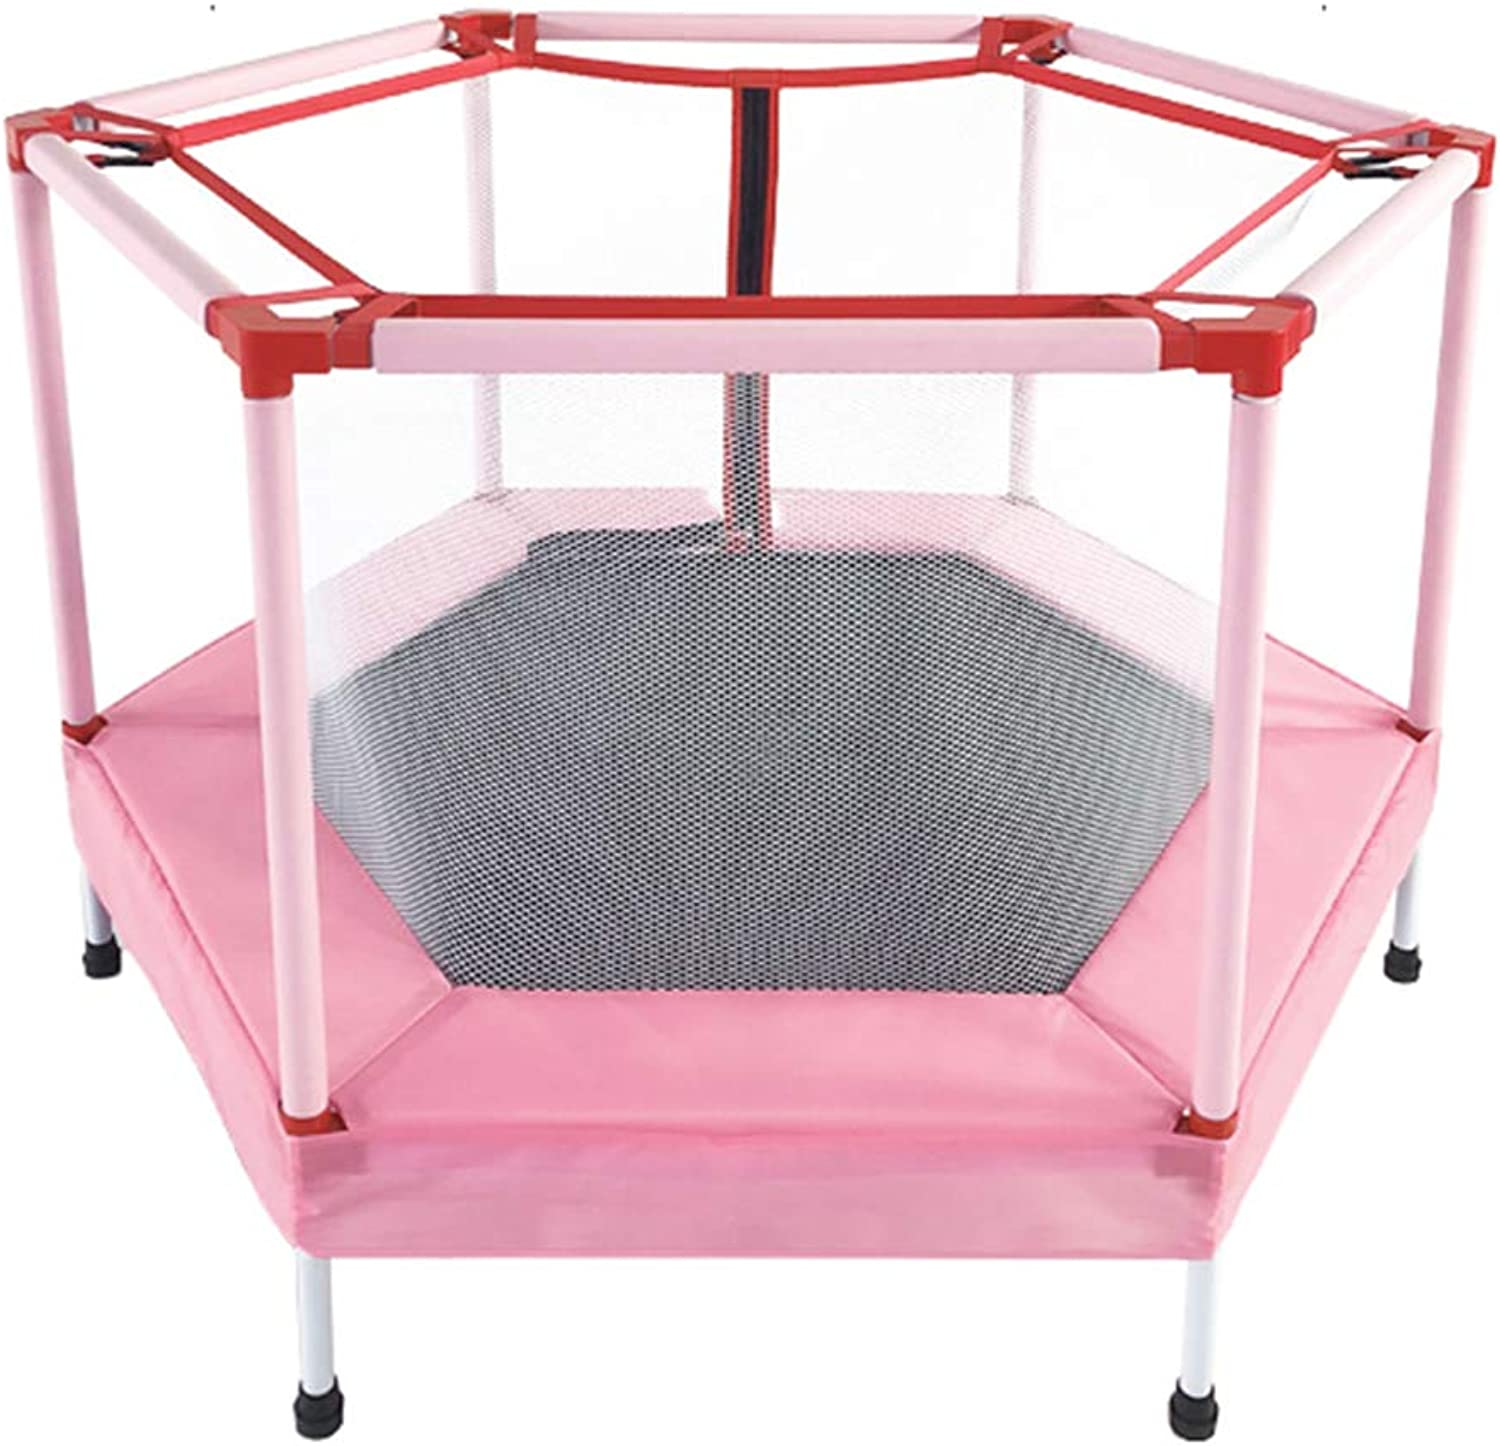 Trampoline Jumping Sheet Bouncing Bed with Predective Net Home Kids Sports Toys Body Sculpture Aerobic Bouncer Elasticity Slimming Gym Fitness Equipment